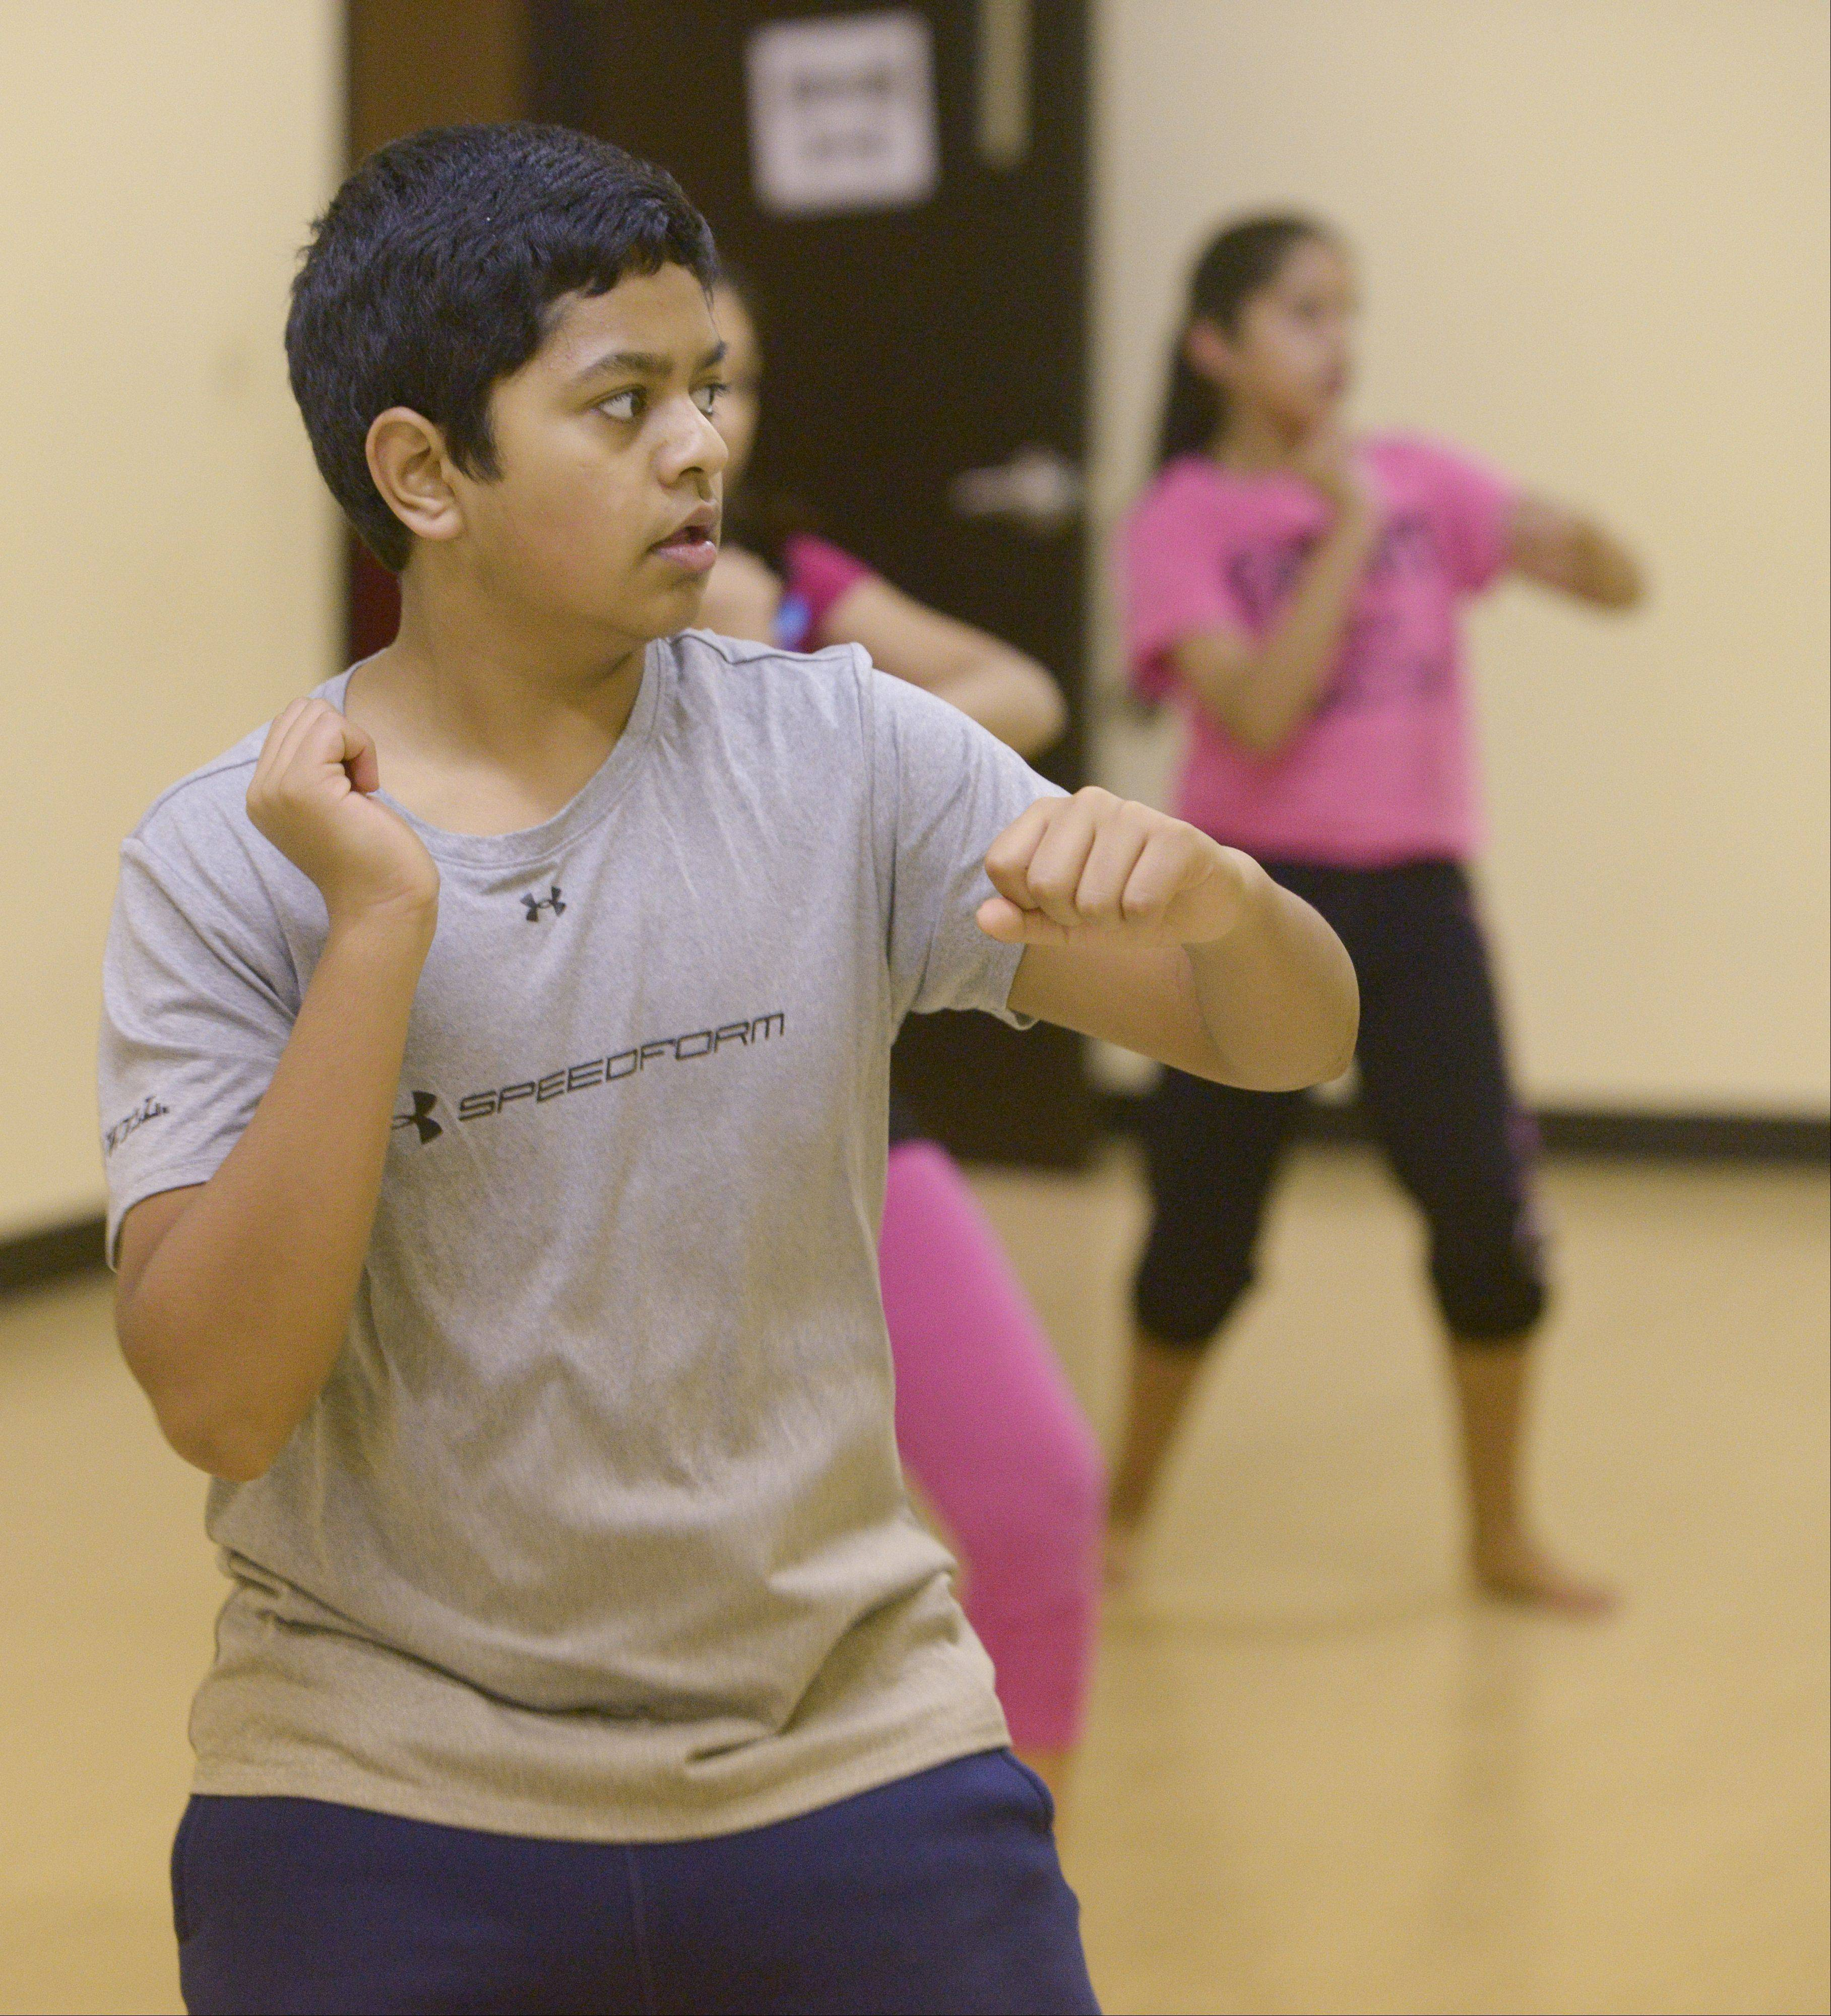 Bollywood Rhythms dance studio student Dhruv Nagesh, 12, of Naperville, practices with his classmates who will be performing Sunday morning along the route of the Inaugural Edward Hospital Naperville Marathon and Half Marathon.